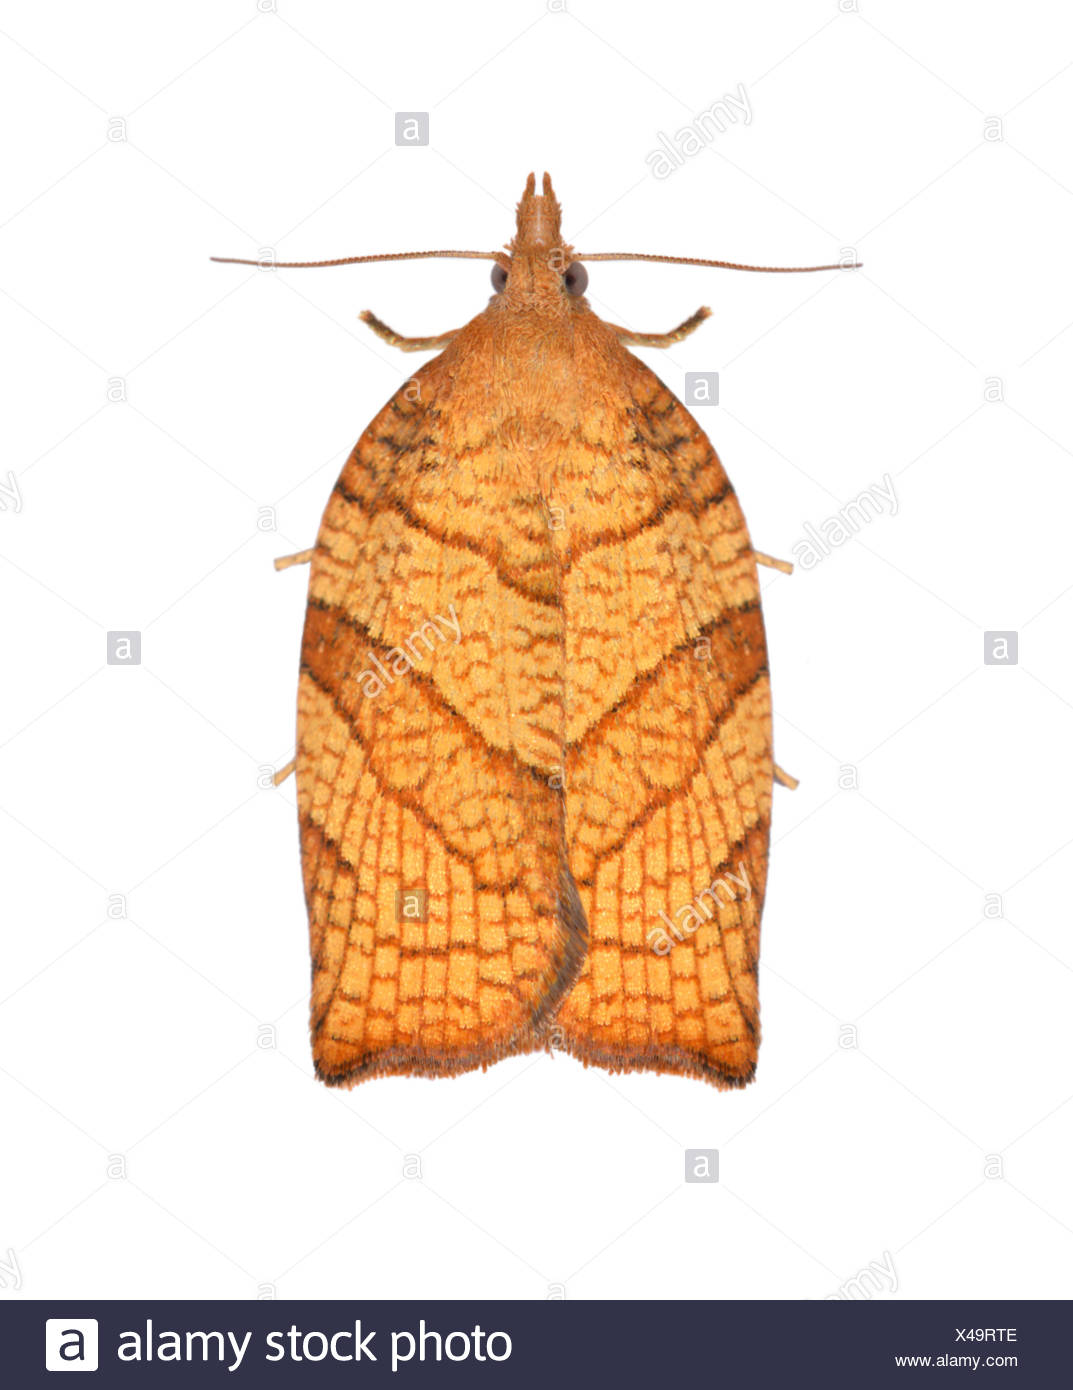 49.024 (0969) Chequered Fruit-tree Tortrix - Pandemis corylana - Stock Image